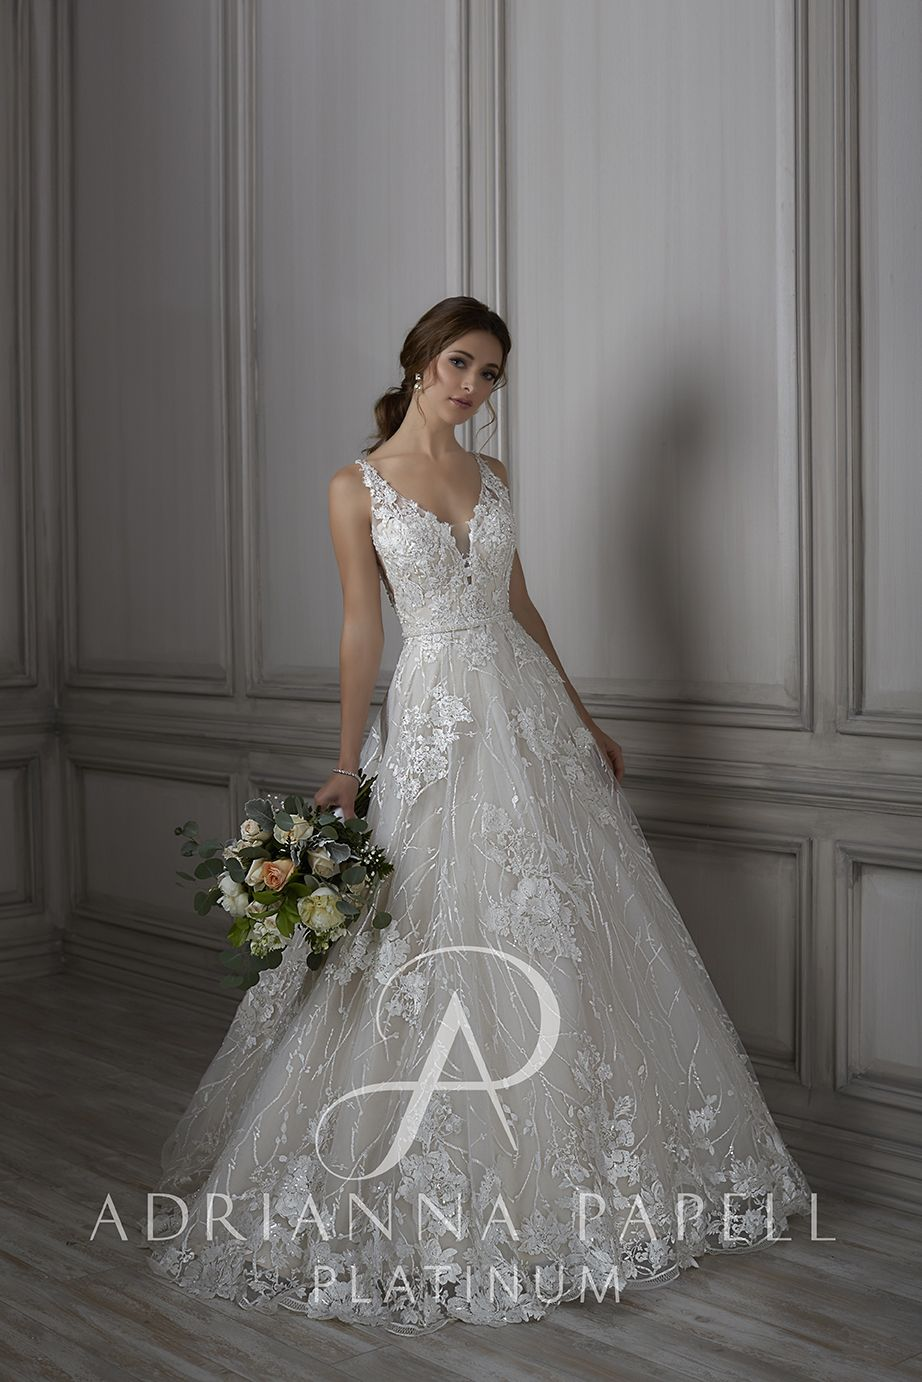 This adrianna papell louisa aline bridal gown is styled in